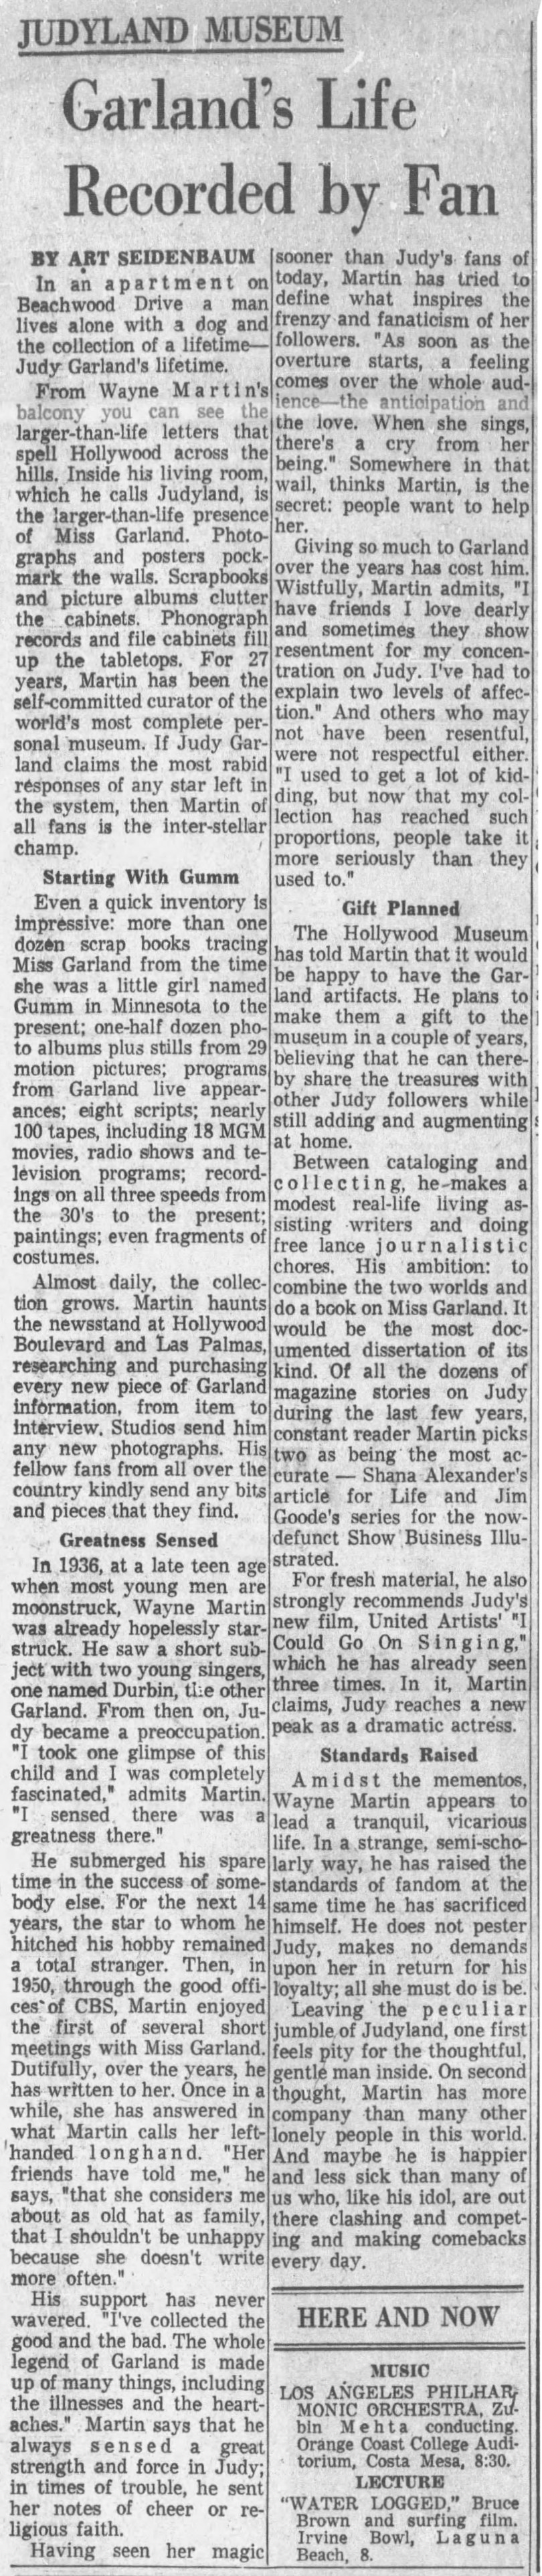 Judy Garland Wayne Martin Los Angeles Times article about Wayne Martin April 13, 1963